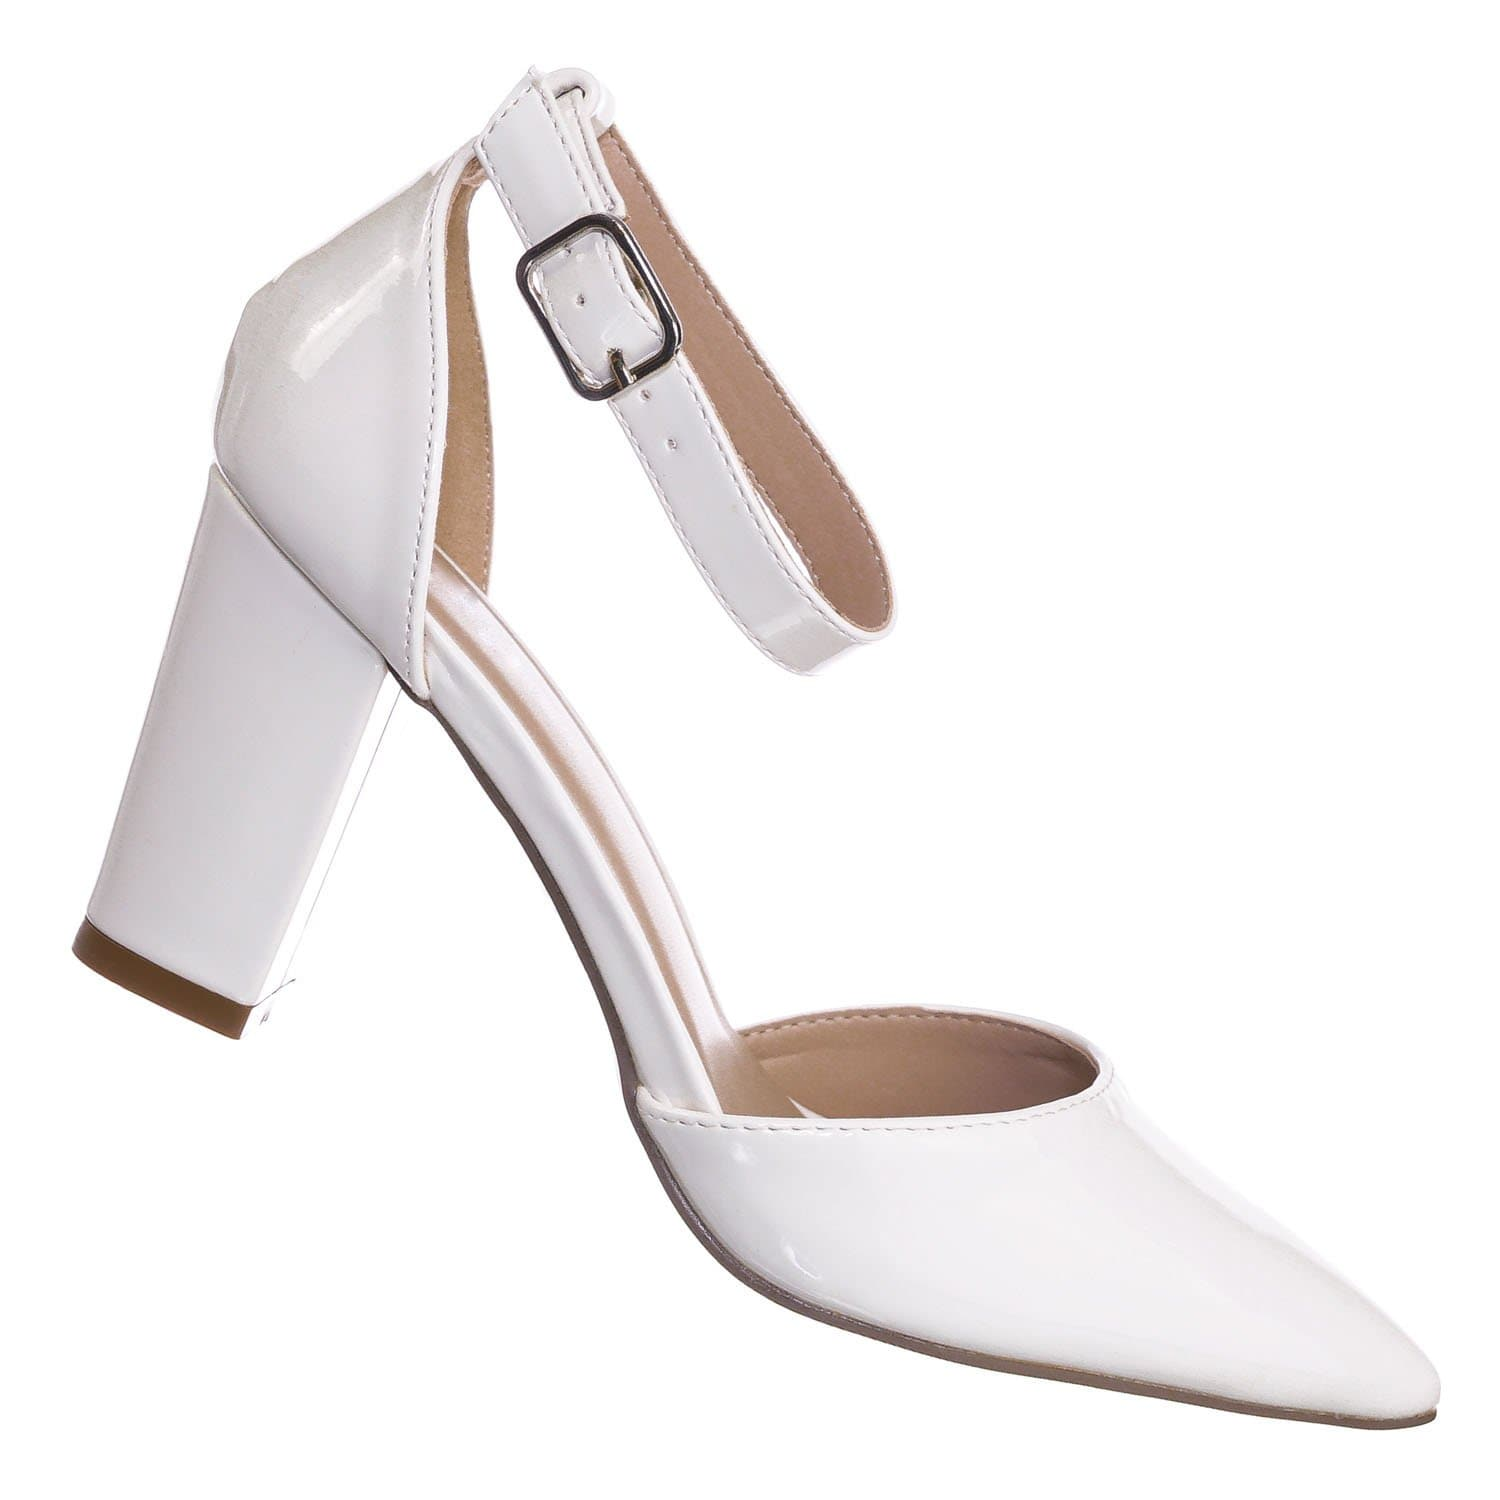 Songful6 WhitePat Retro Pointed Toe d'Orsay Chunky Block Heel Pump - Women Open Shank